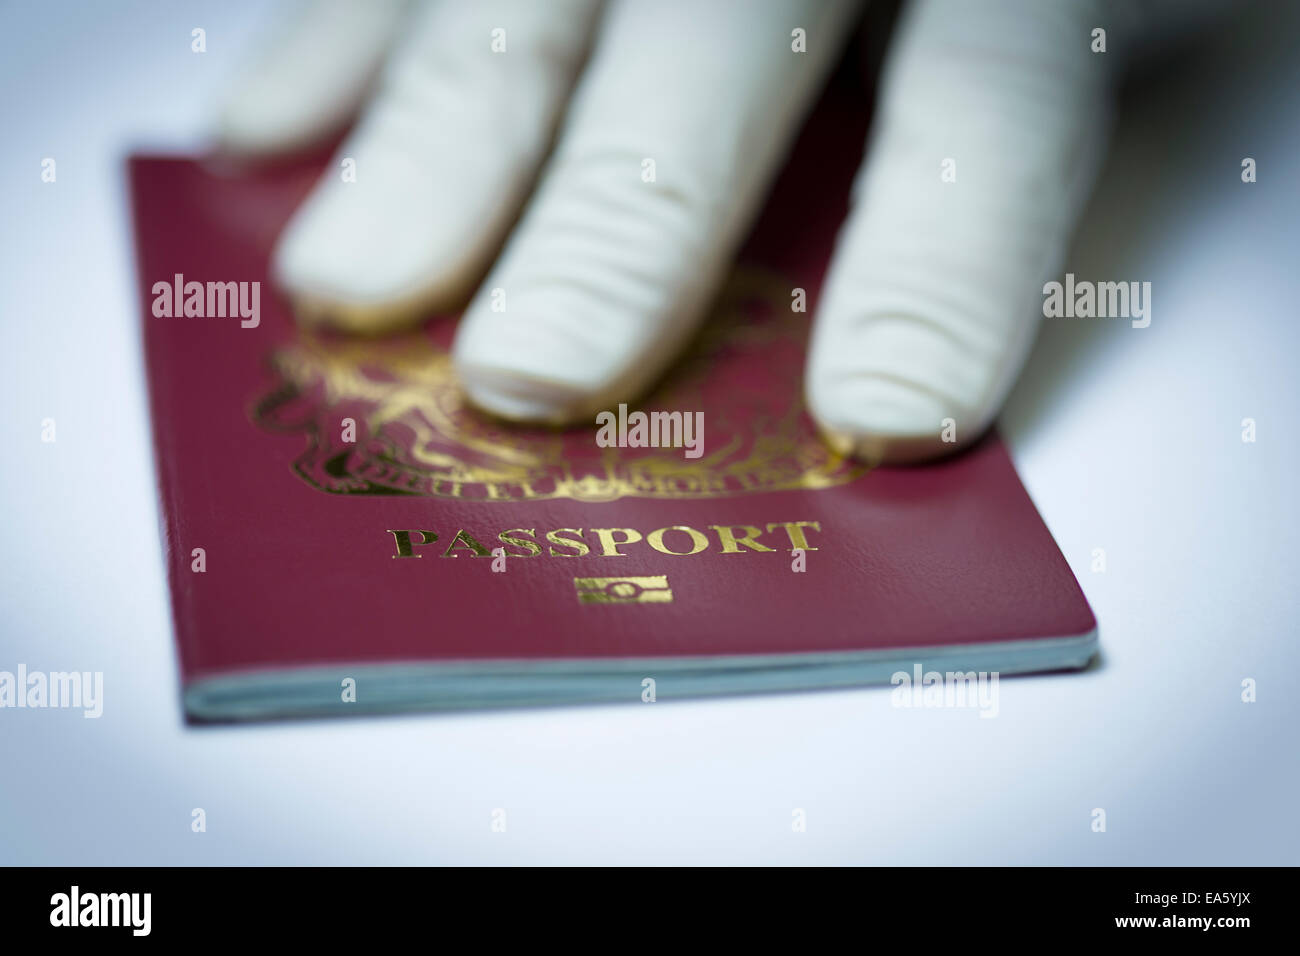 Latex gloved hand returning a passport to its owner. - Stock Image